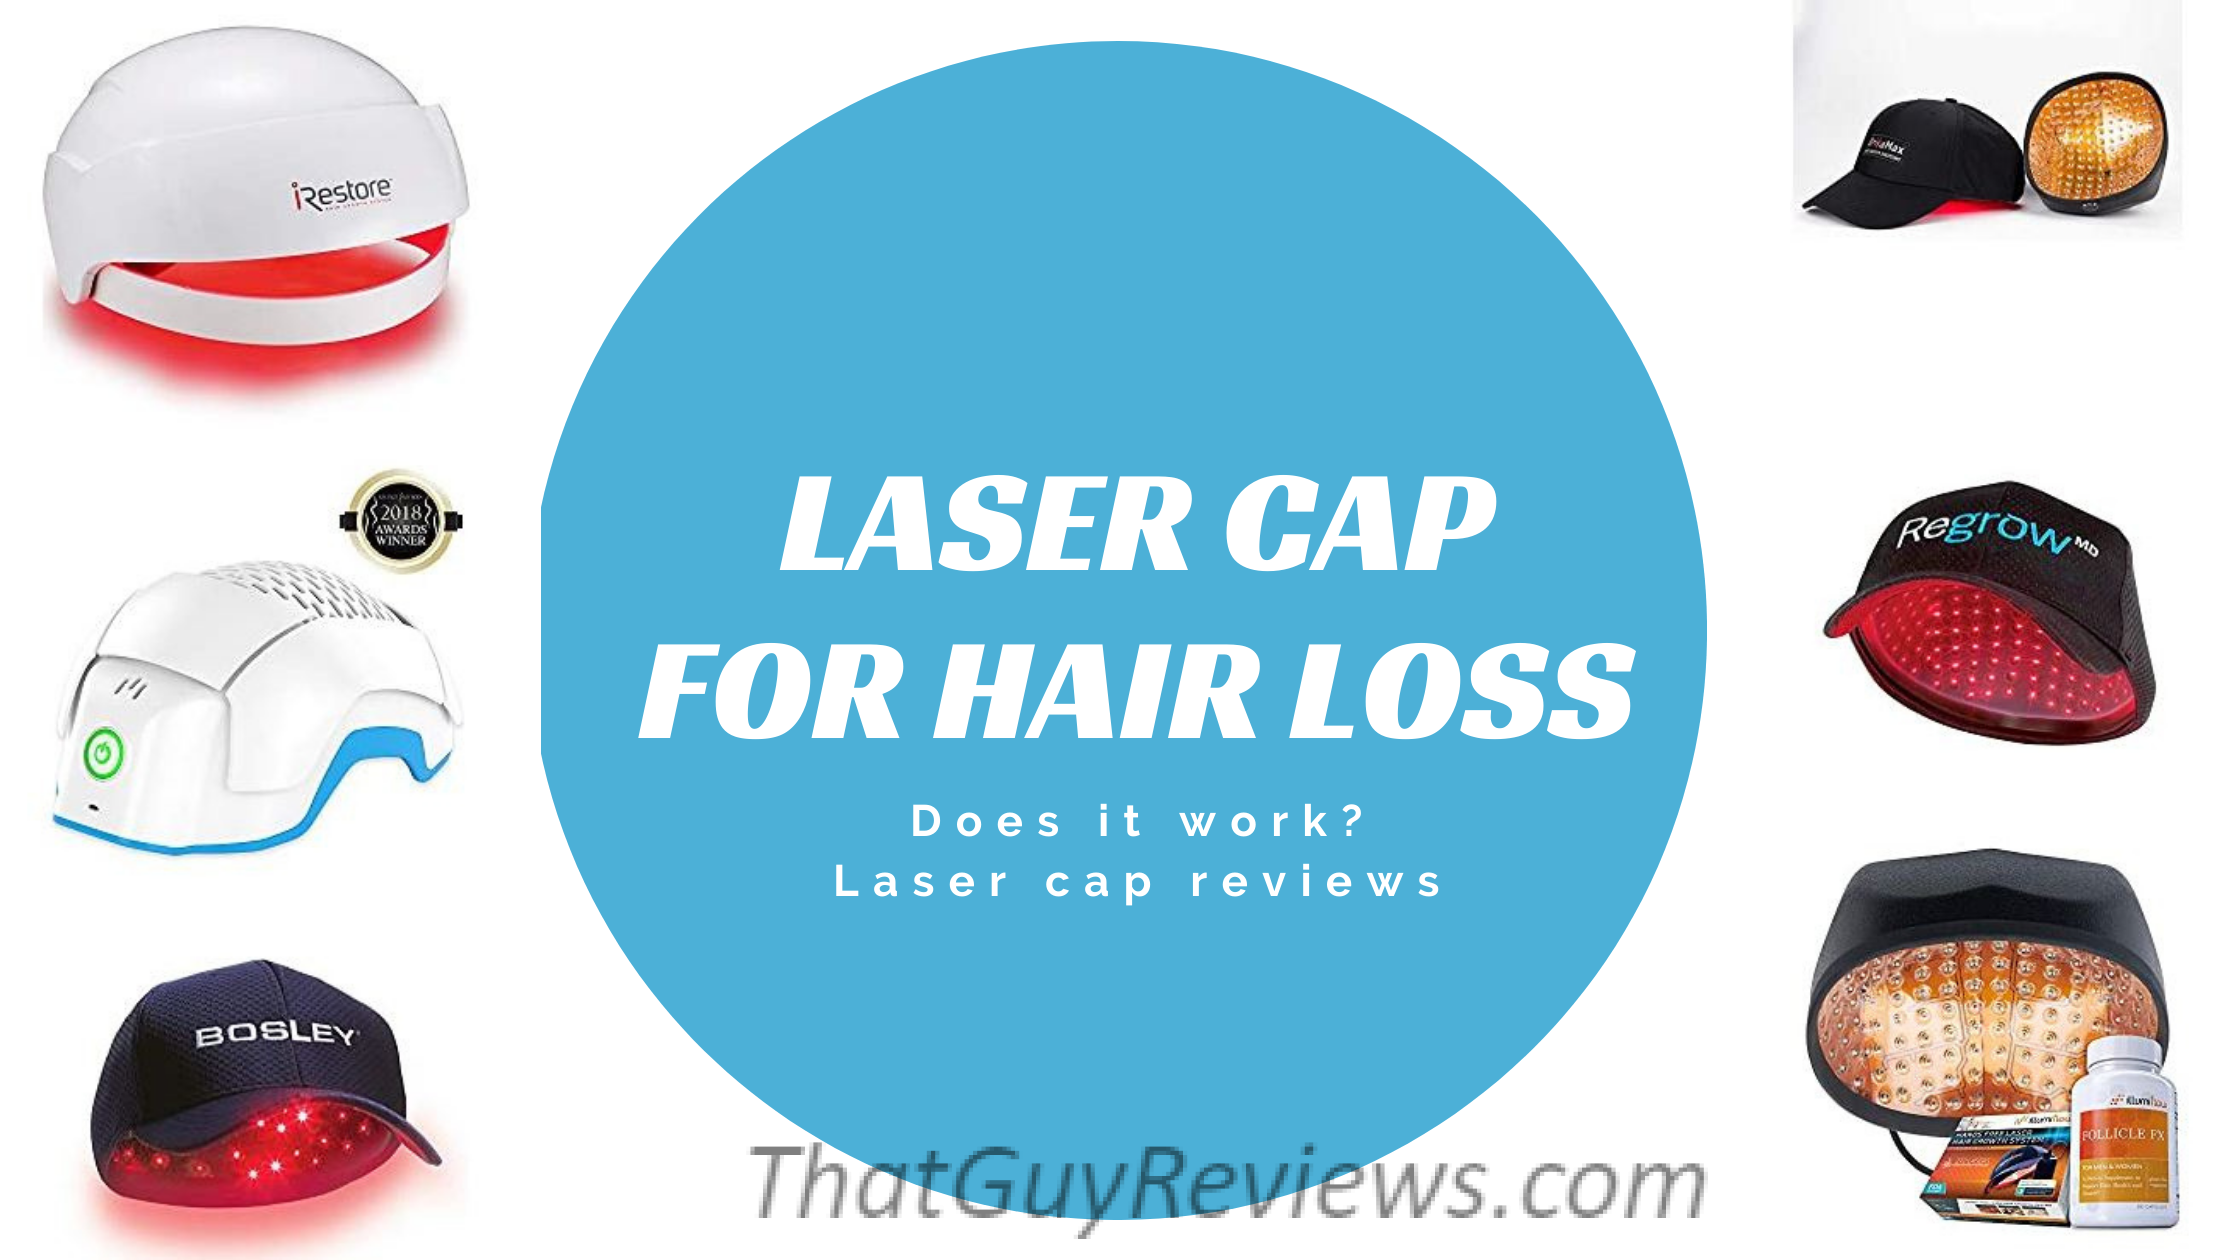 Laser Cap for Hair Loss Review